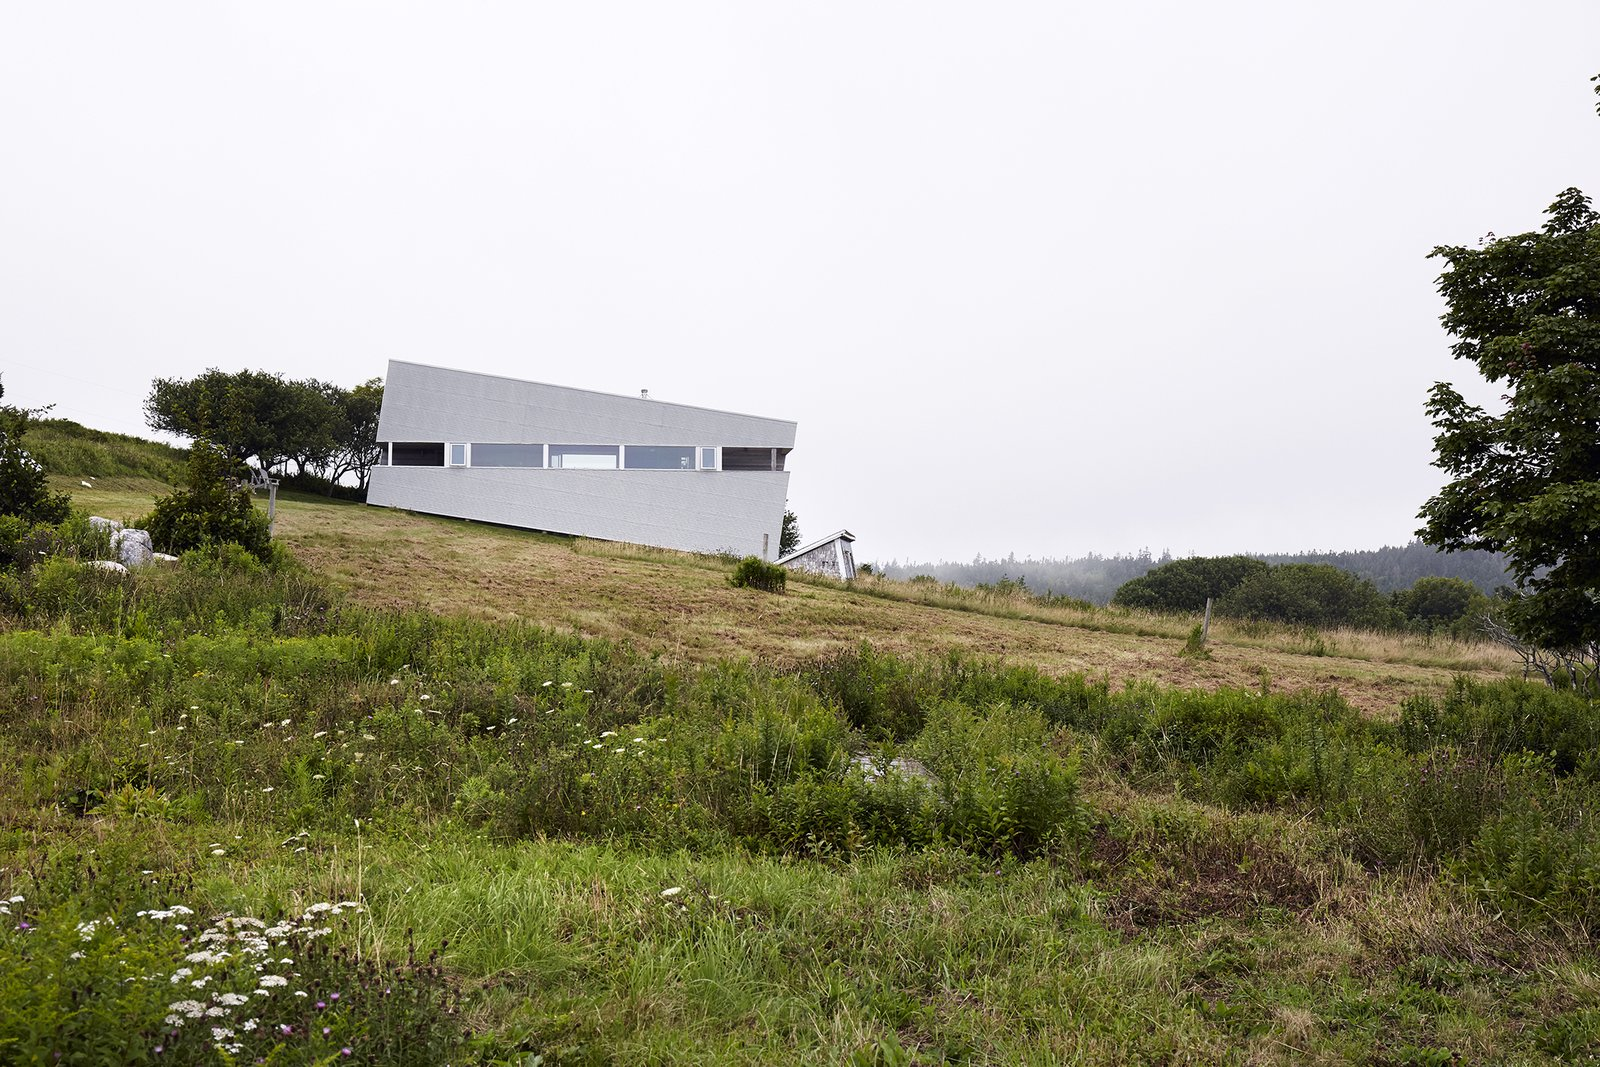 Imagined as a jewel box on a hill, Sliding House takes the place of a barn that once stood on this Nova Scotia site. Its form follows the slope of the land, while the windows are parallel with the horizon, setting up a tension between a plumb interior and a slanted exterior. The tilt of the structure isn't just a visual trick—it also helps the roof to drain. When the distinctive windows are lit from within, the house serves as a beacon for local sailors.